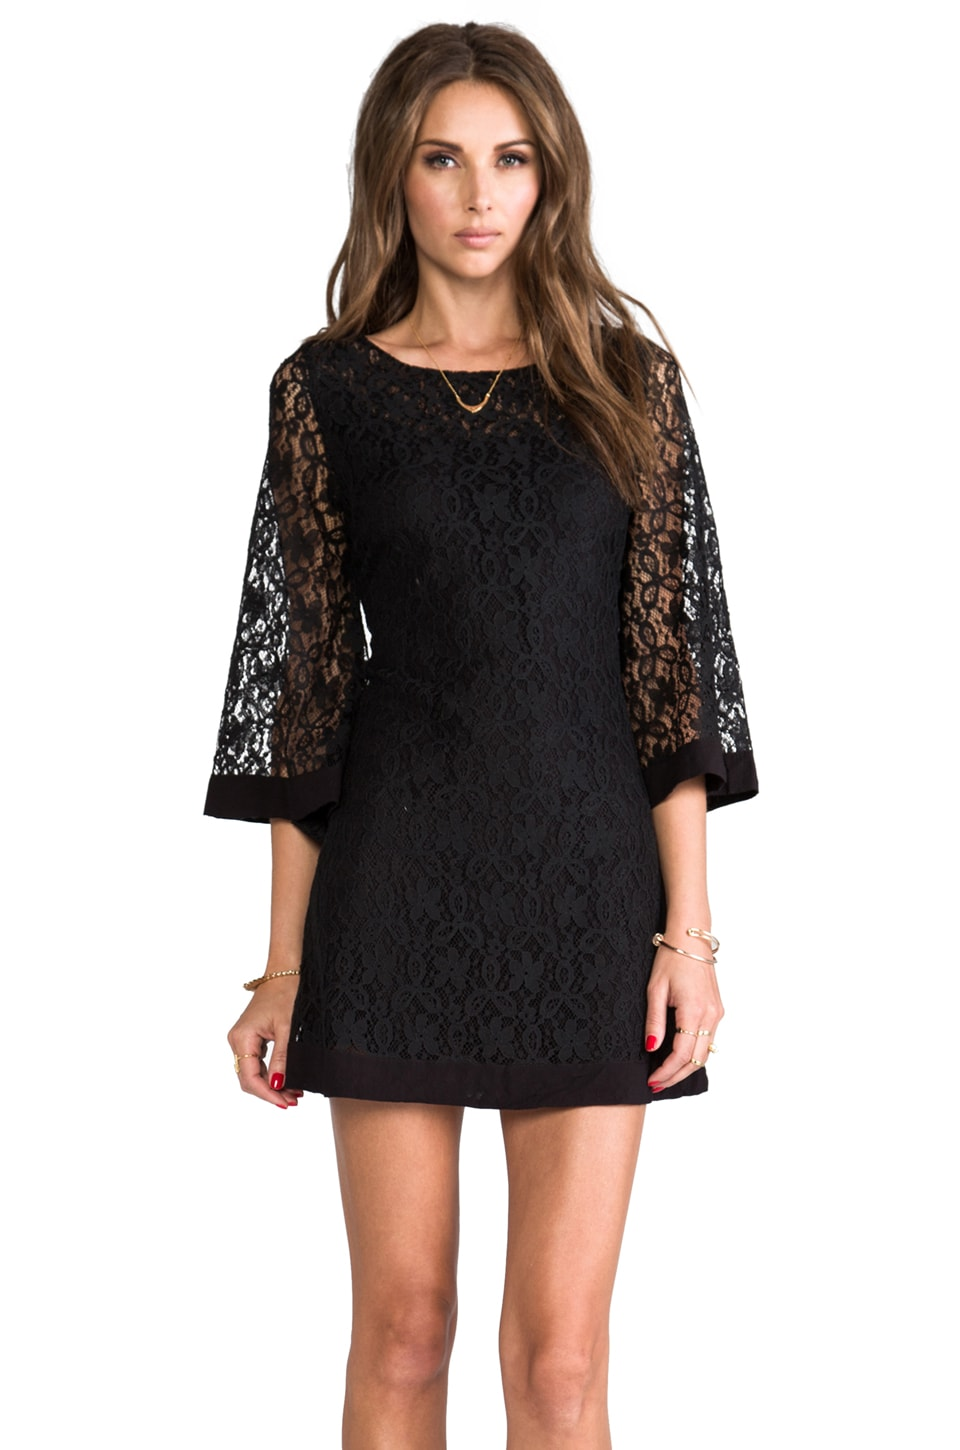 JARLO Jocelyn Long Sleeve Lace Dress in Black